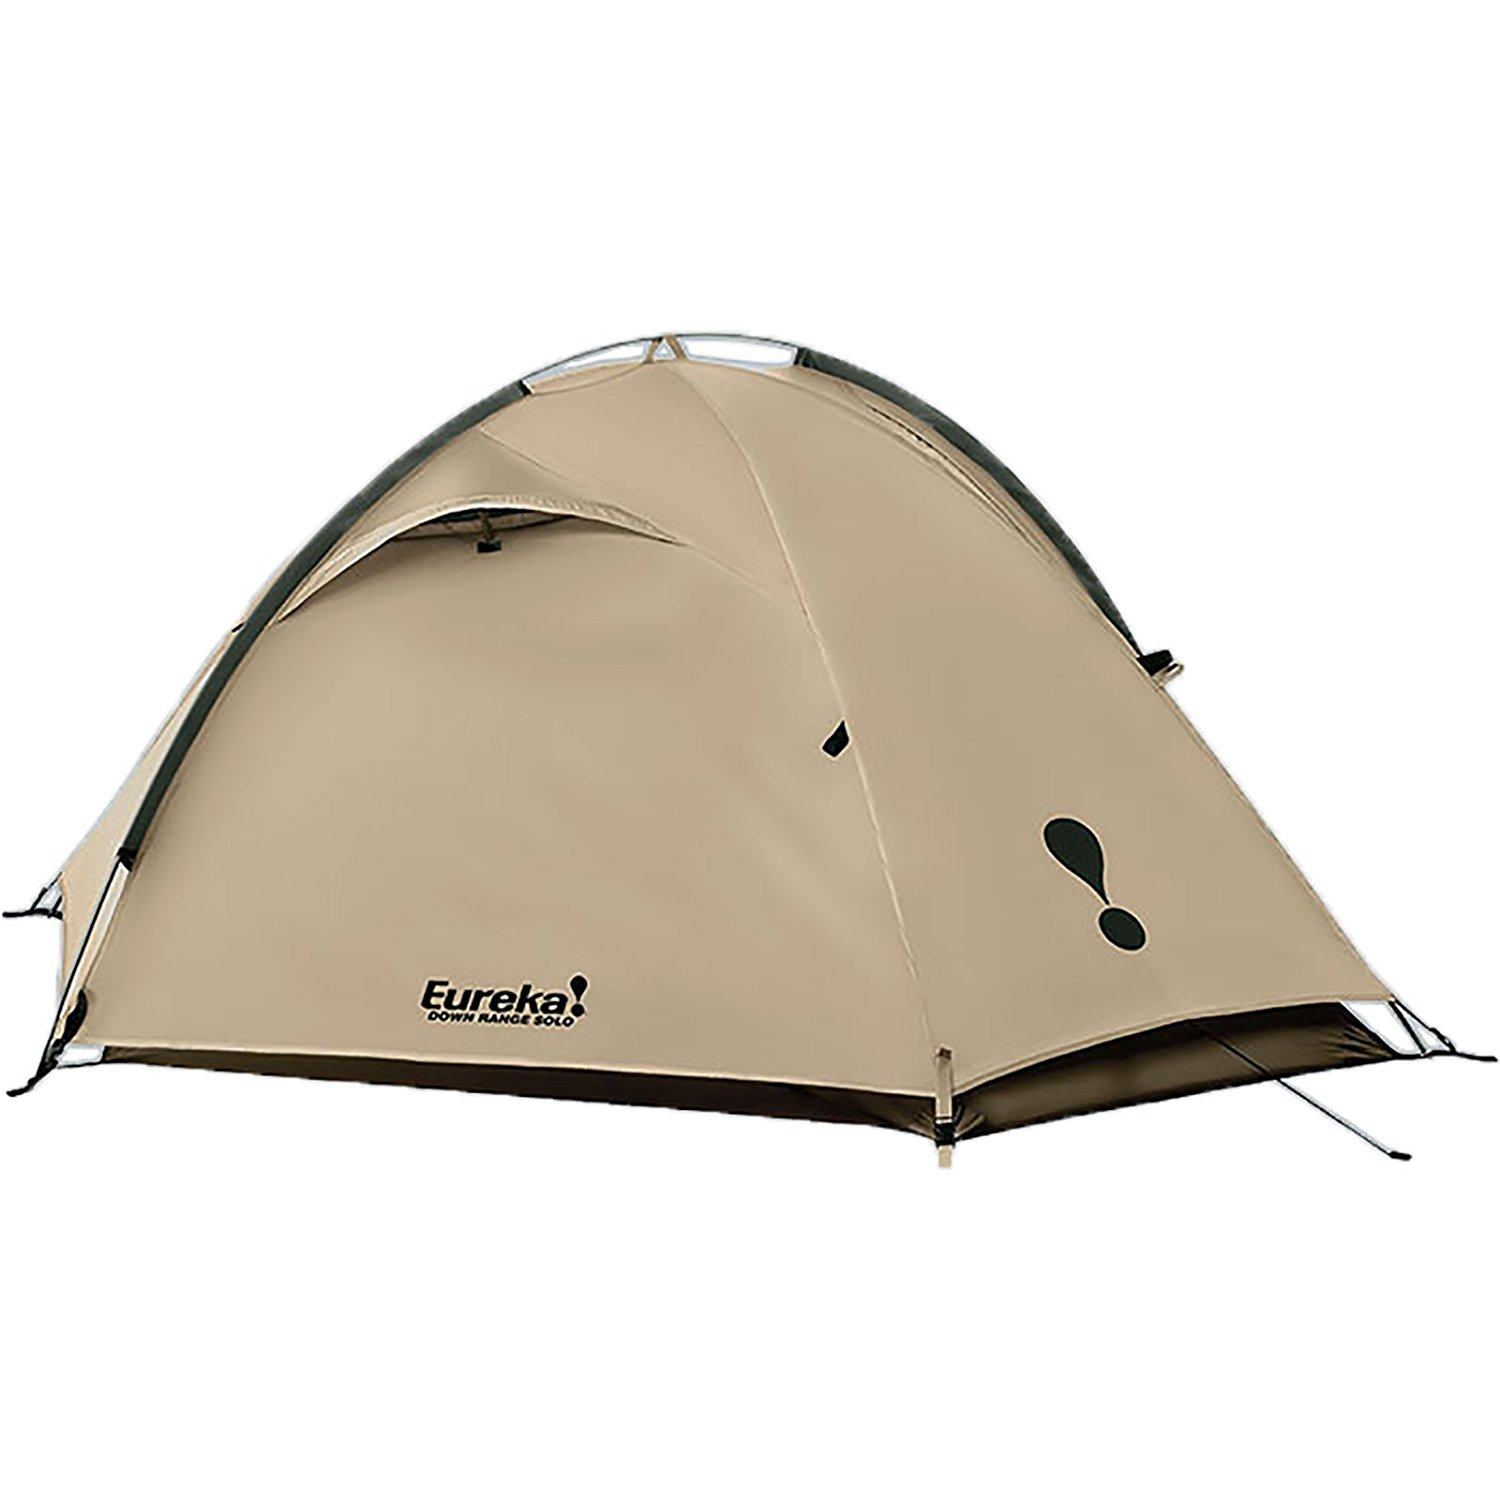 Eureka Range Solo 1 Person Tent